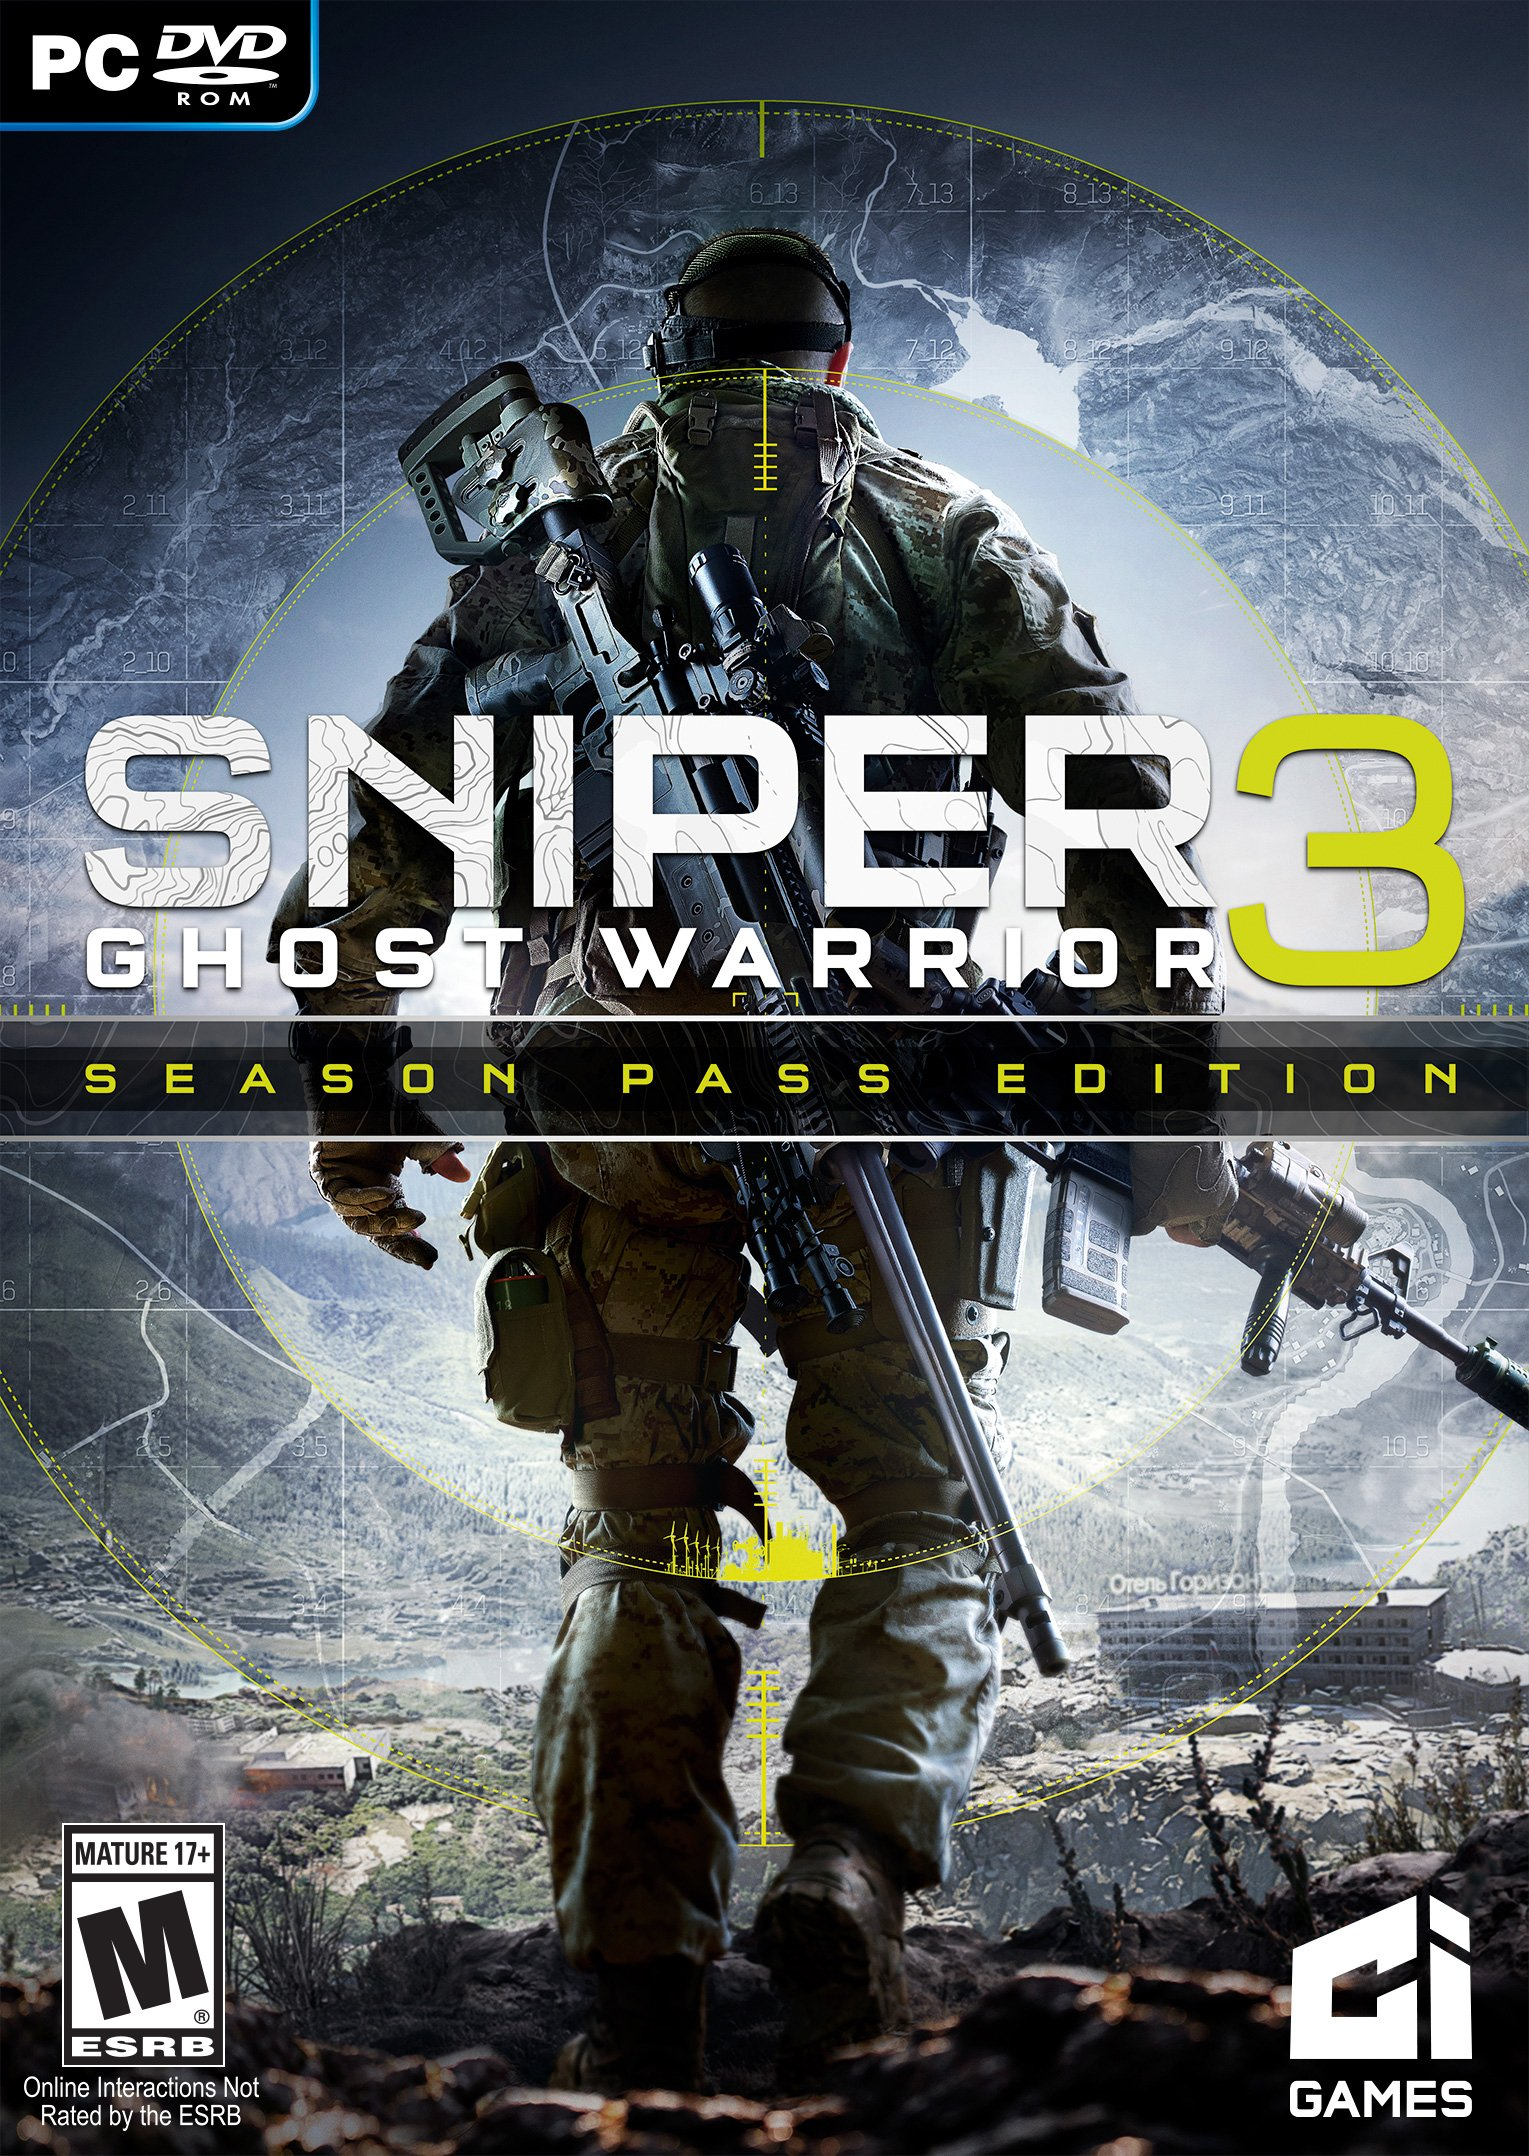 http://img5.downloadha.com/hosein/Game/April%202017/24/Sniper-Ghost-Warrior-3-pc-cover-large.jpg